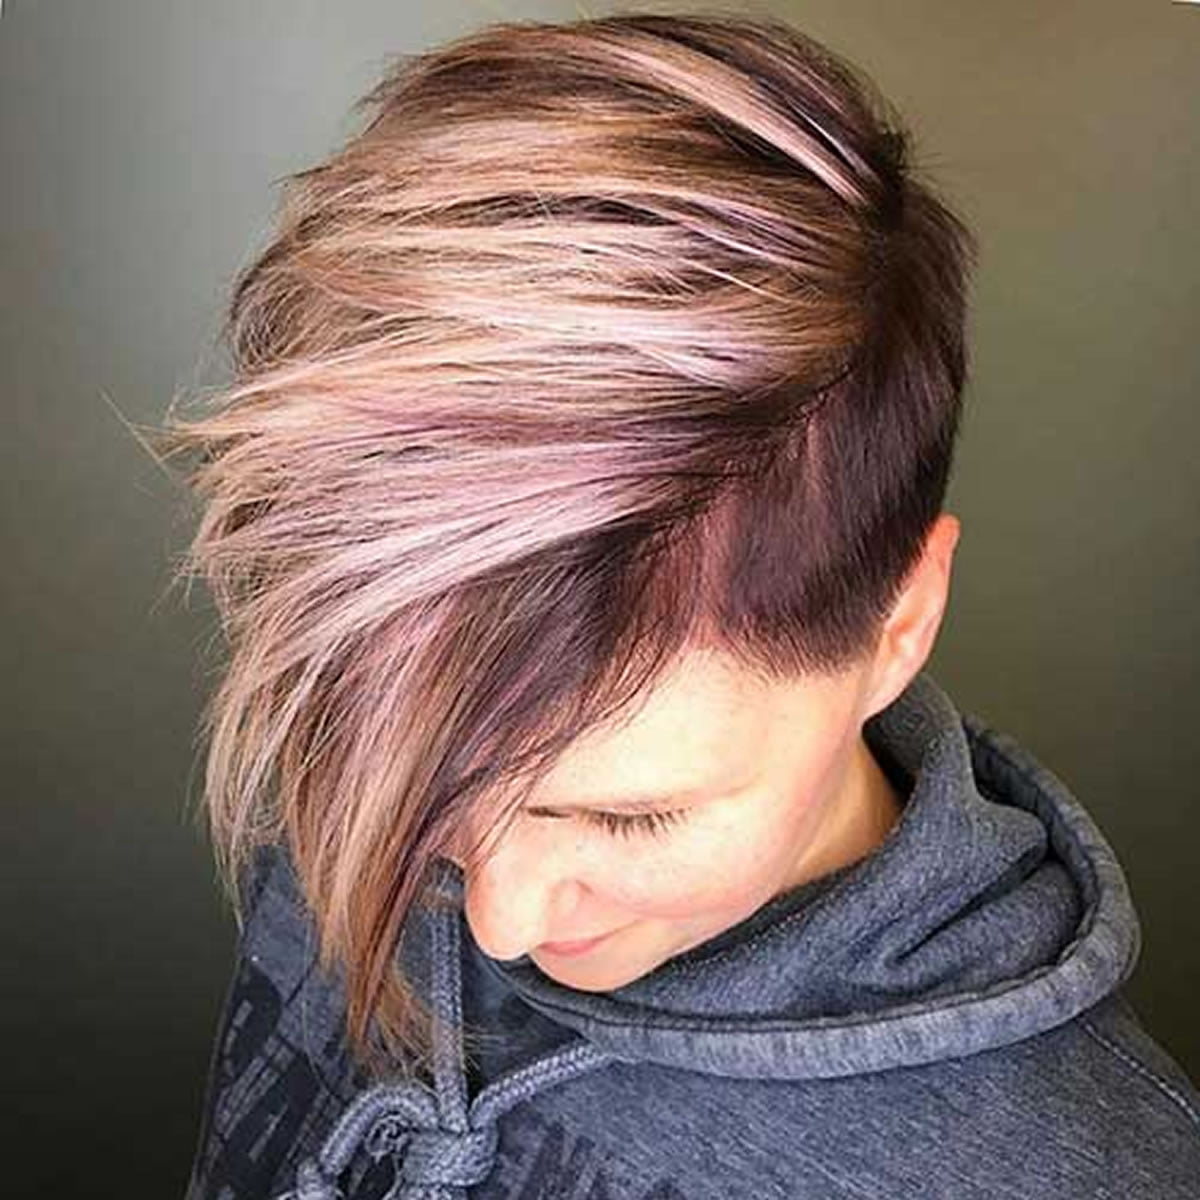 50 The Coolest Short Hairstyles And Hair Colors For Women 2018 2019